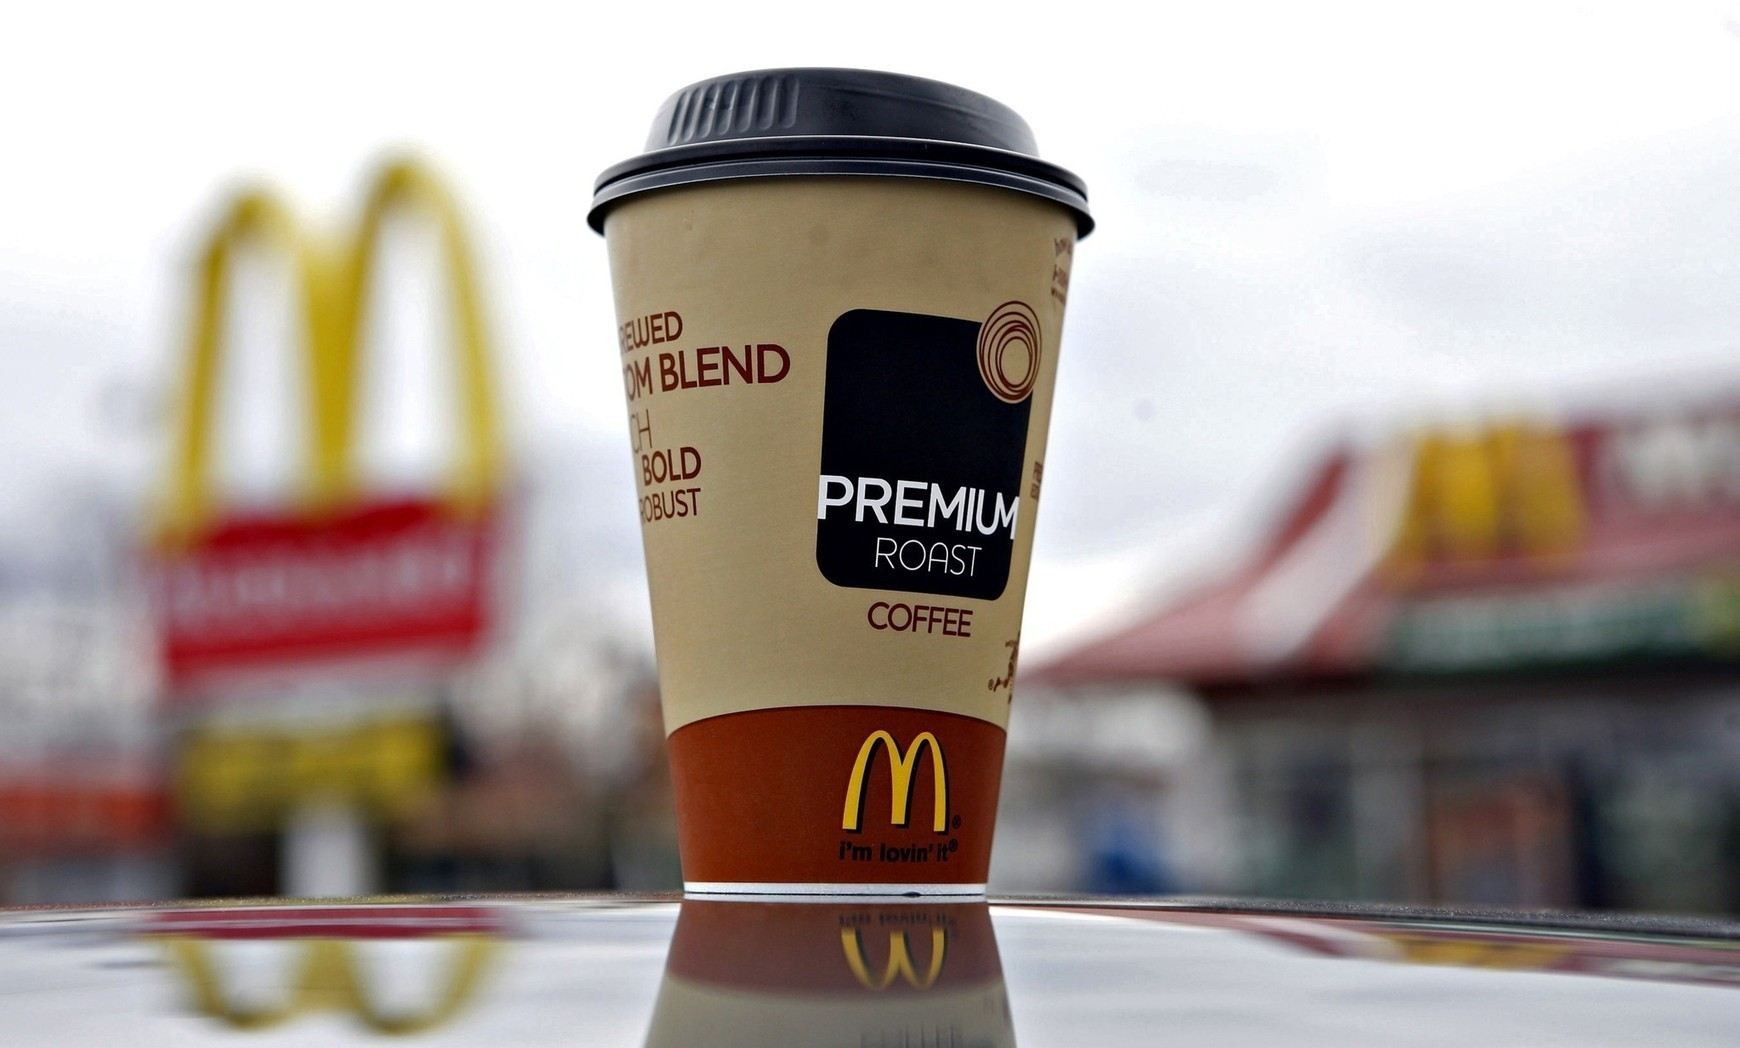 McDonald's offers free coffee after Taco Bell breakfast rollout